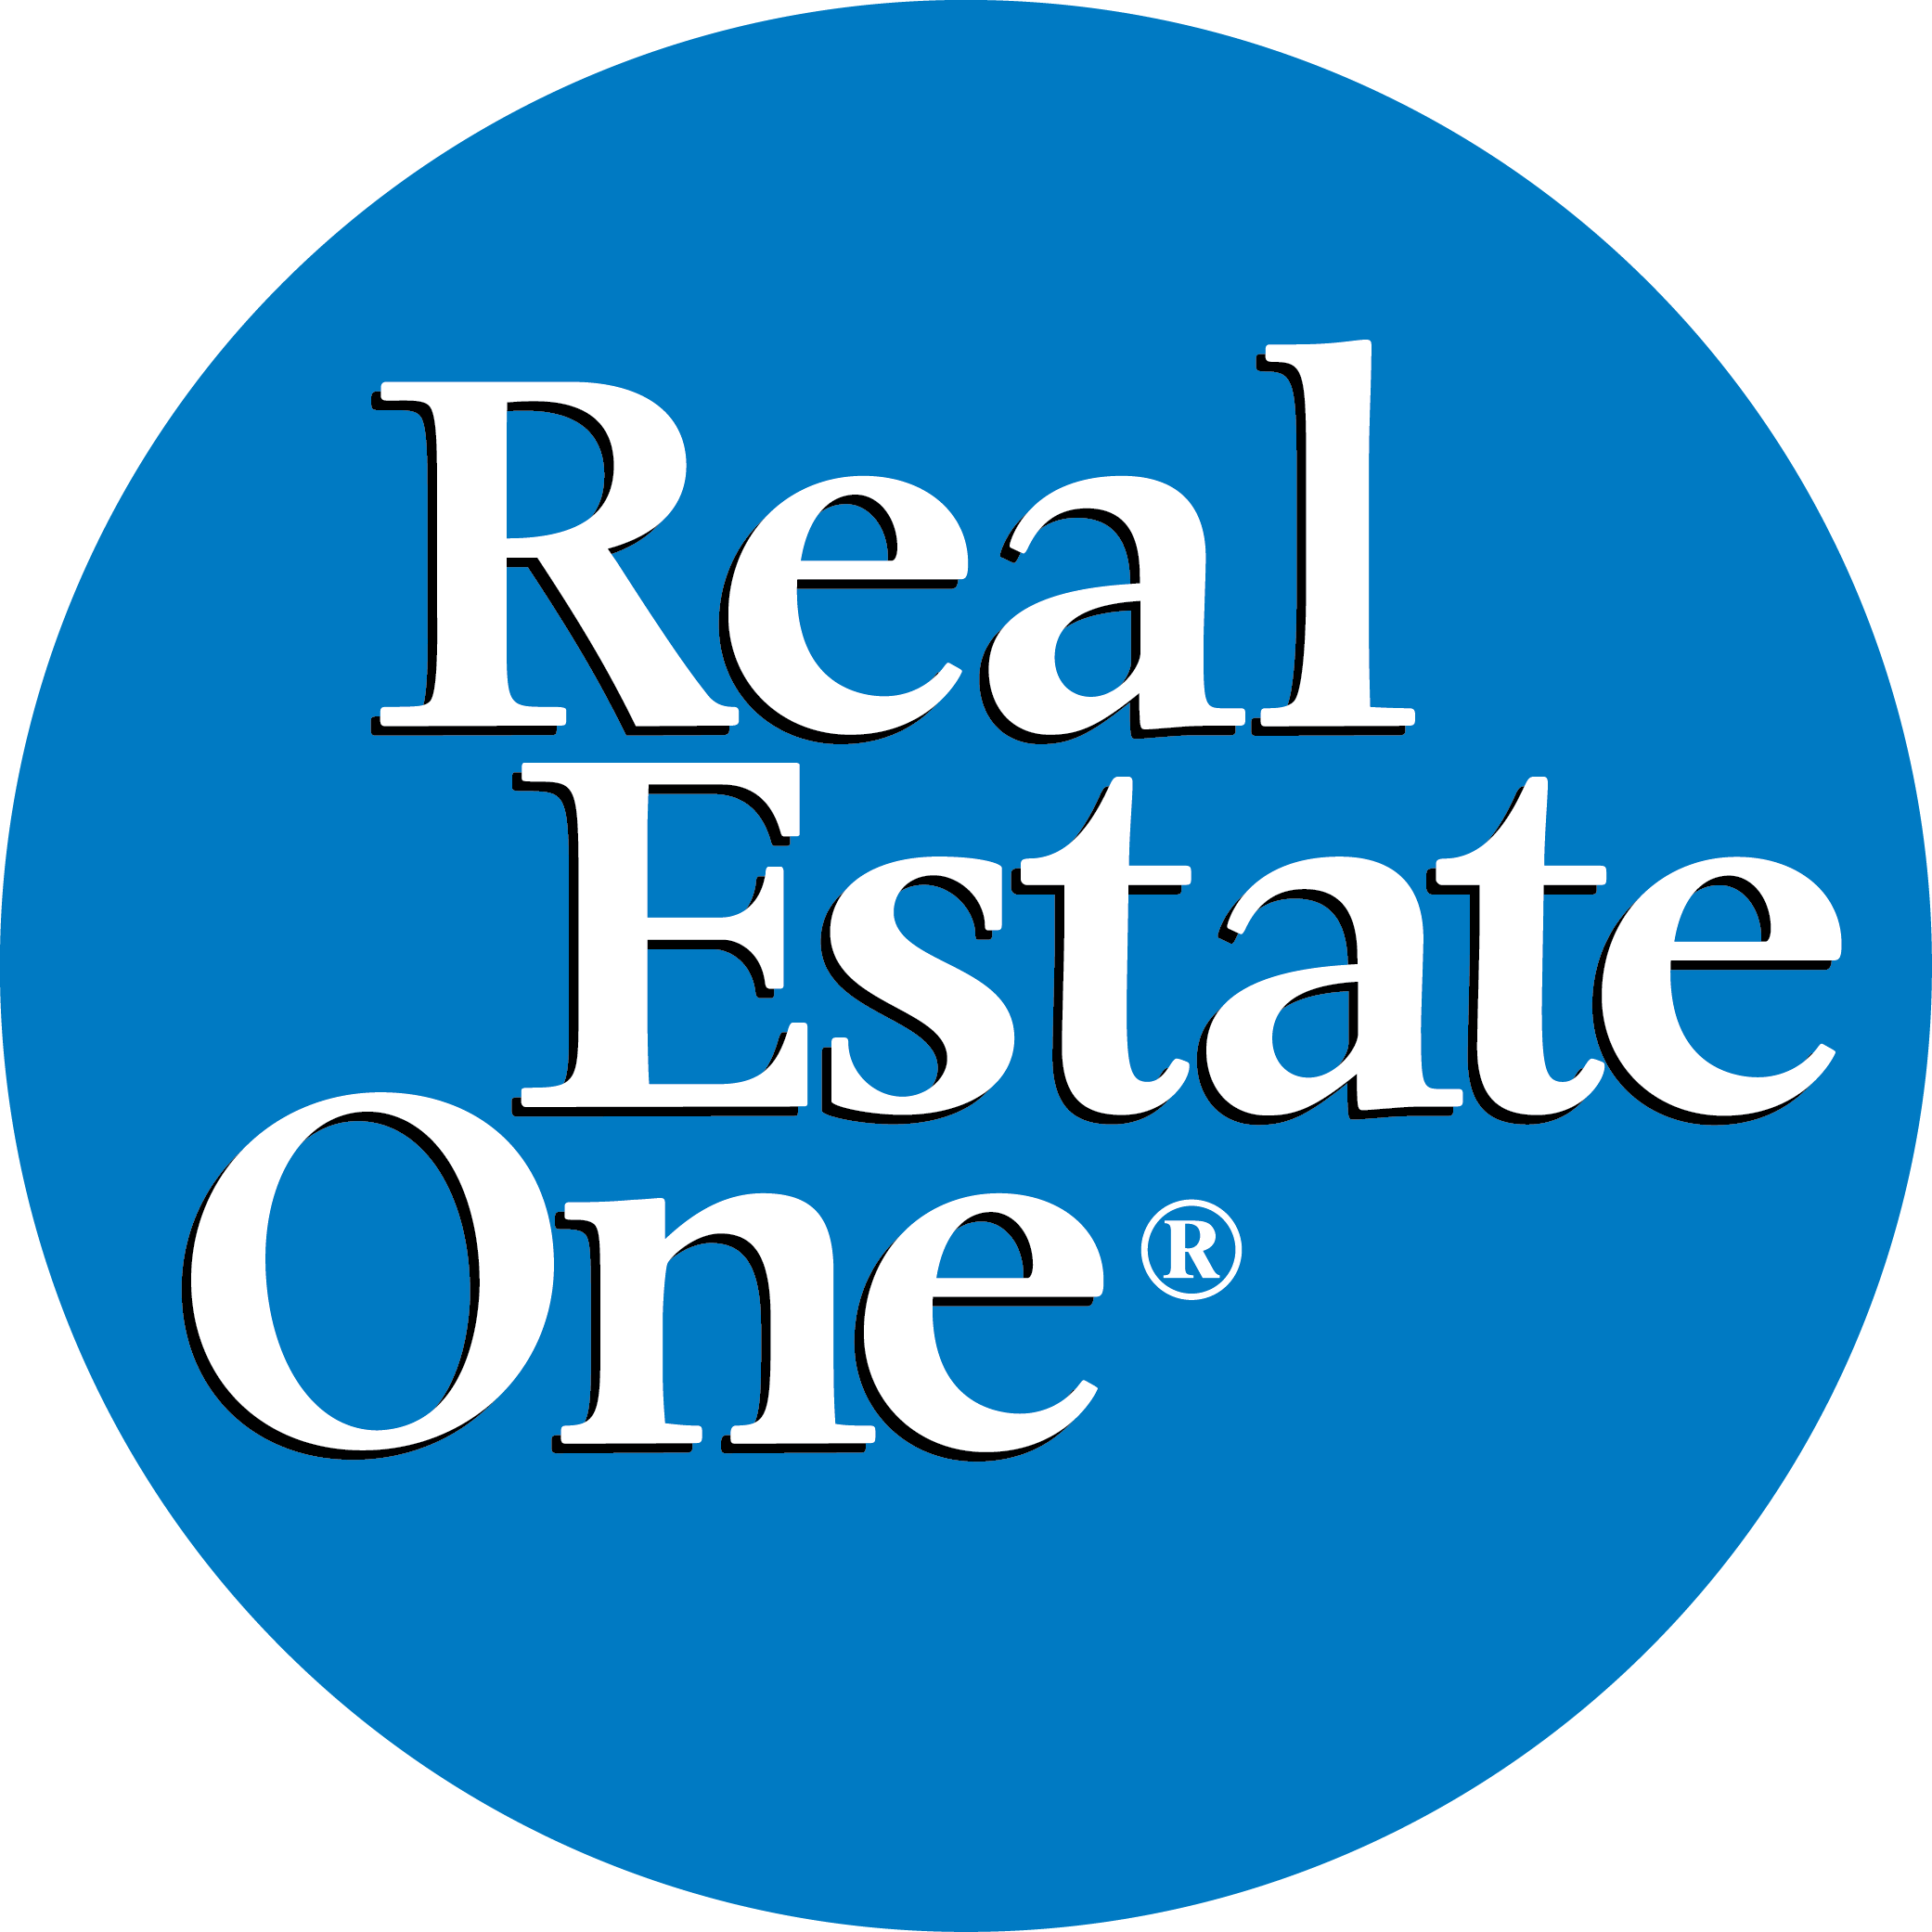 Corey Mims   Real Estate One